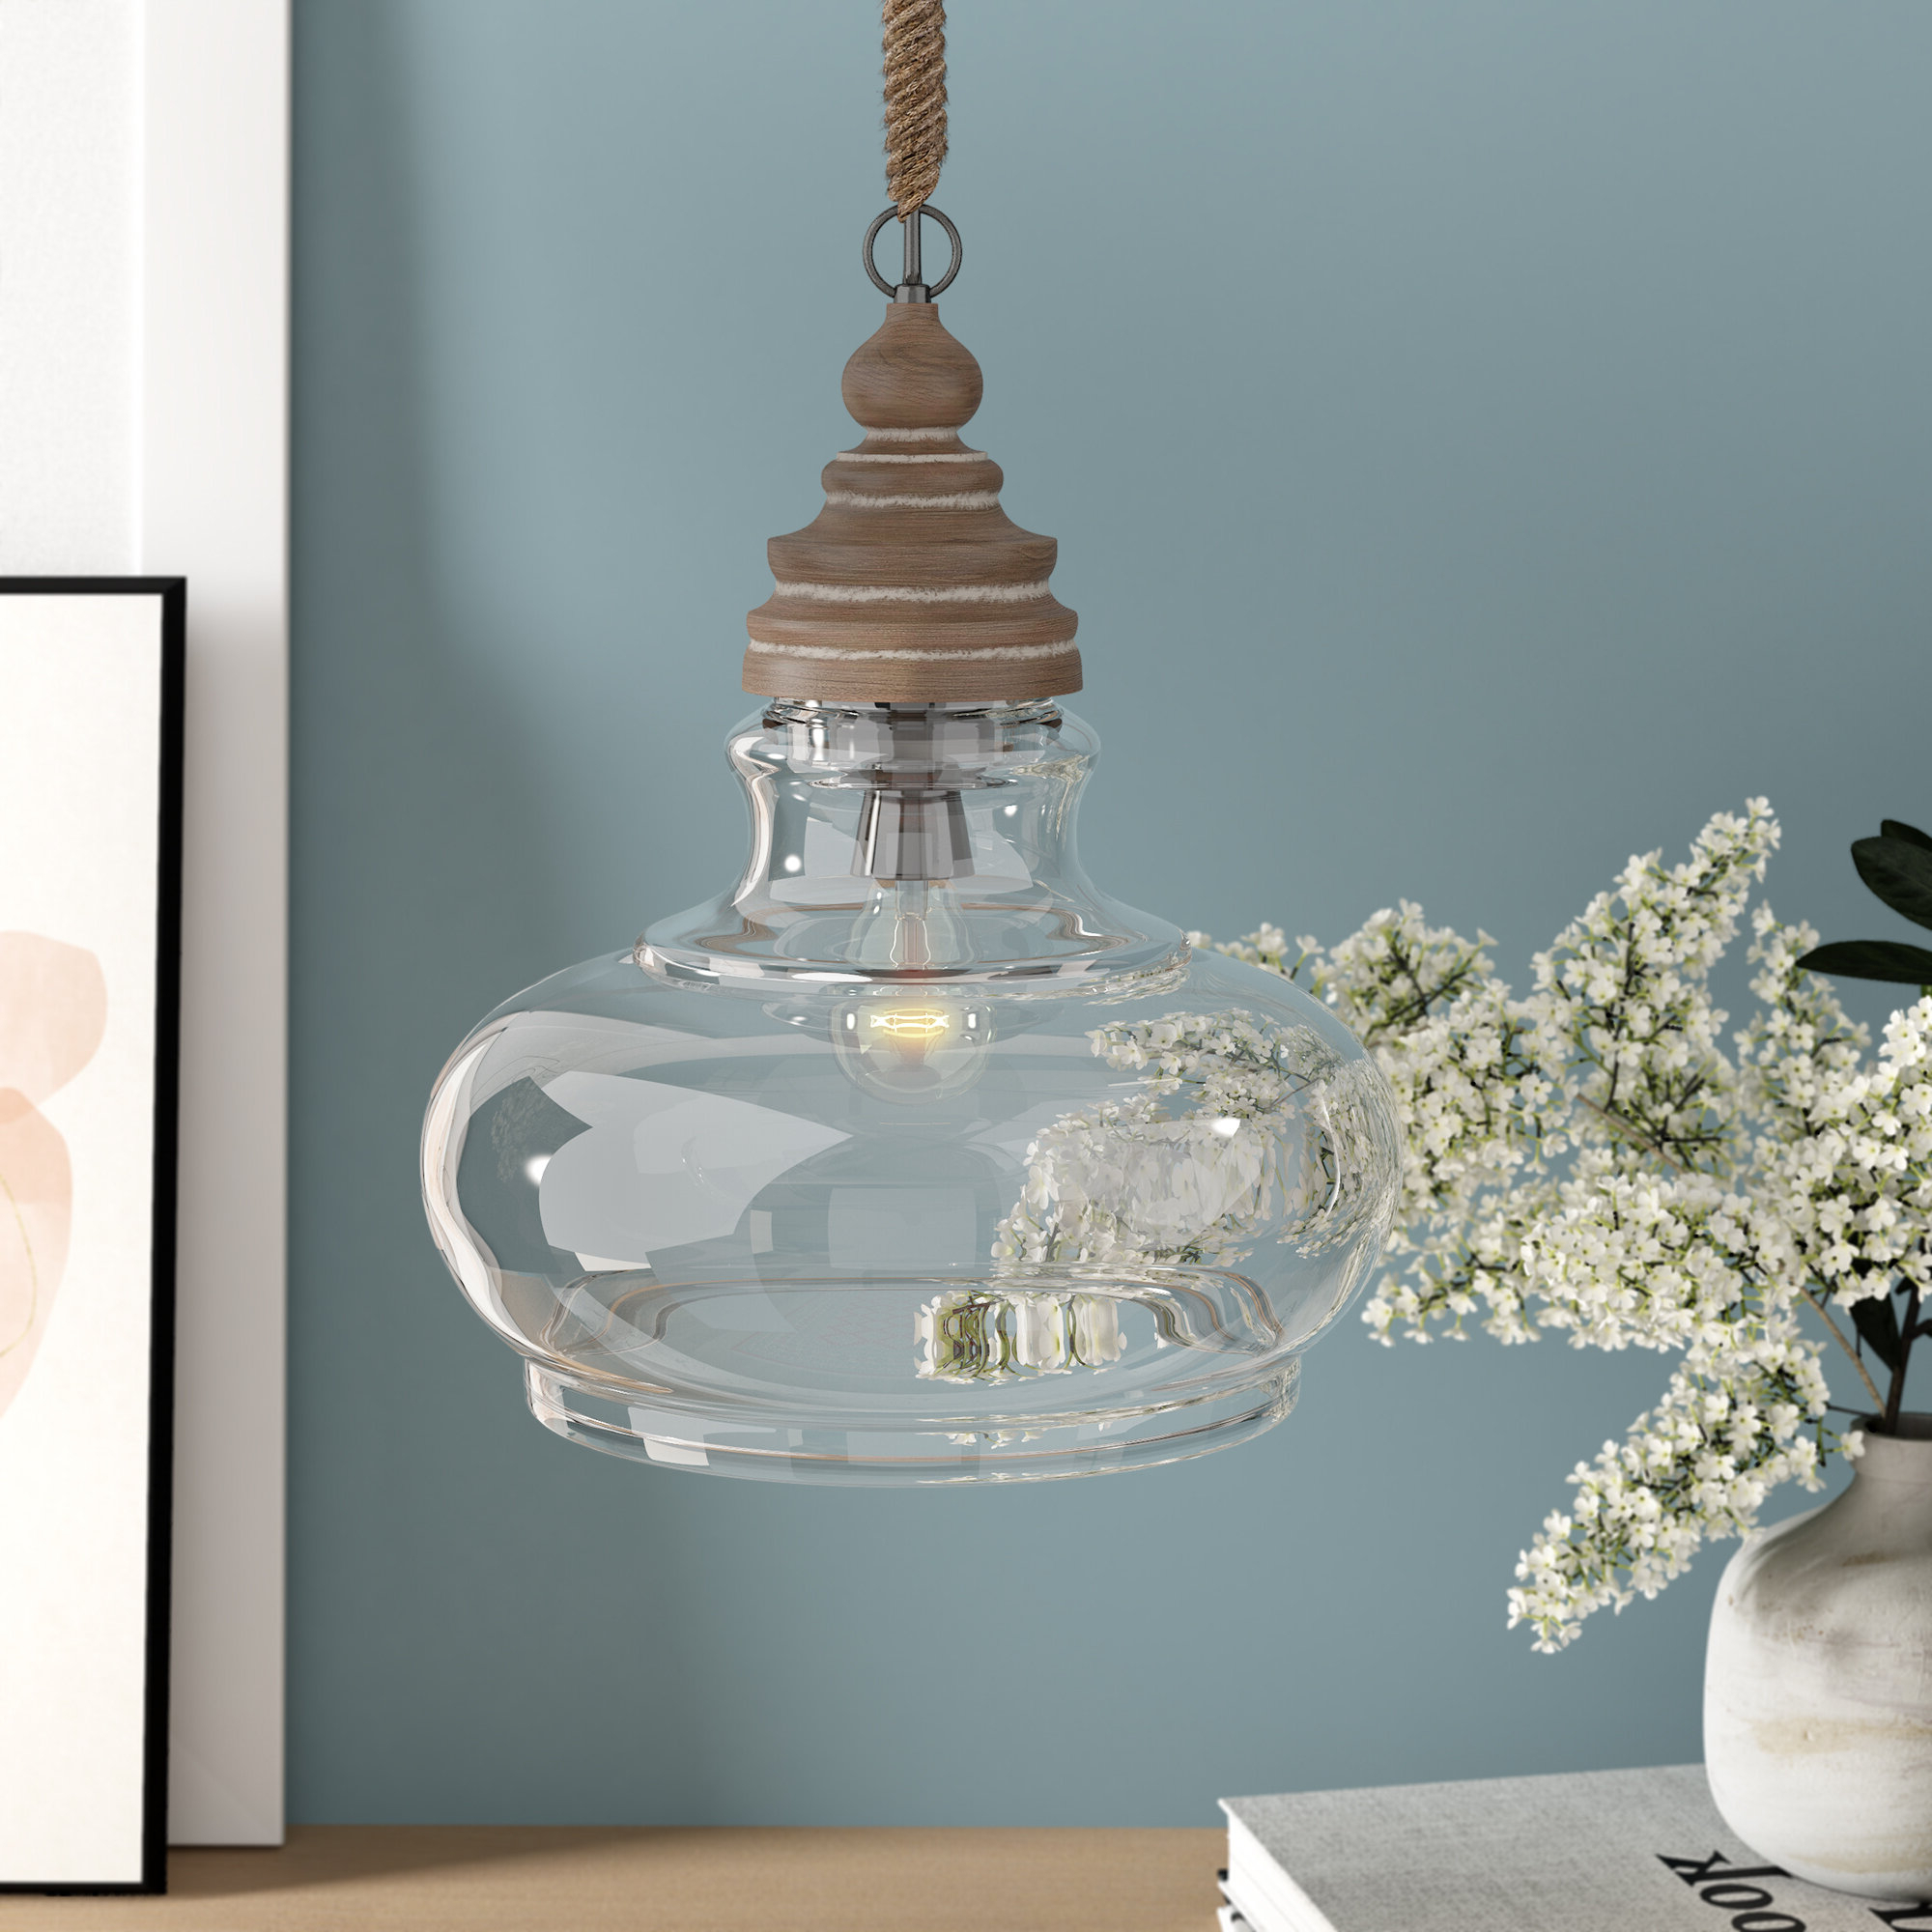 Maelle 1 Light Single Bell Pendant Within Most Popular 1 Light Single Bell Pendants (View 11 of 20)